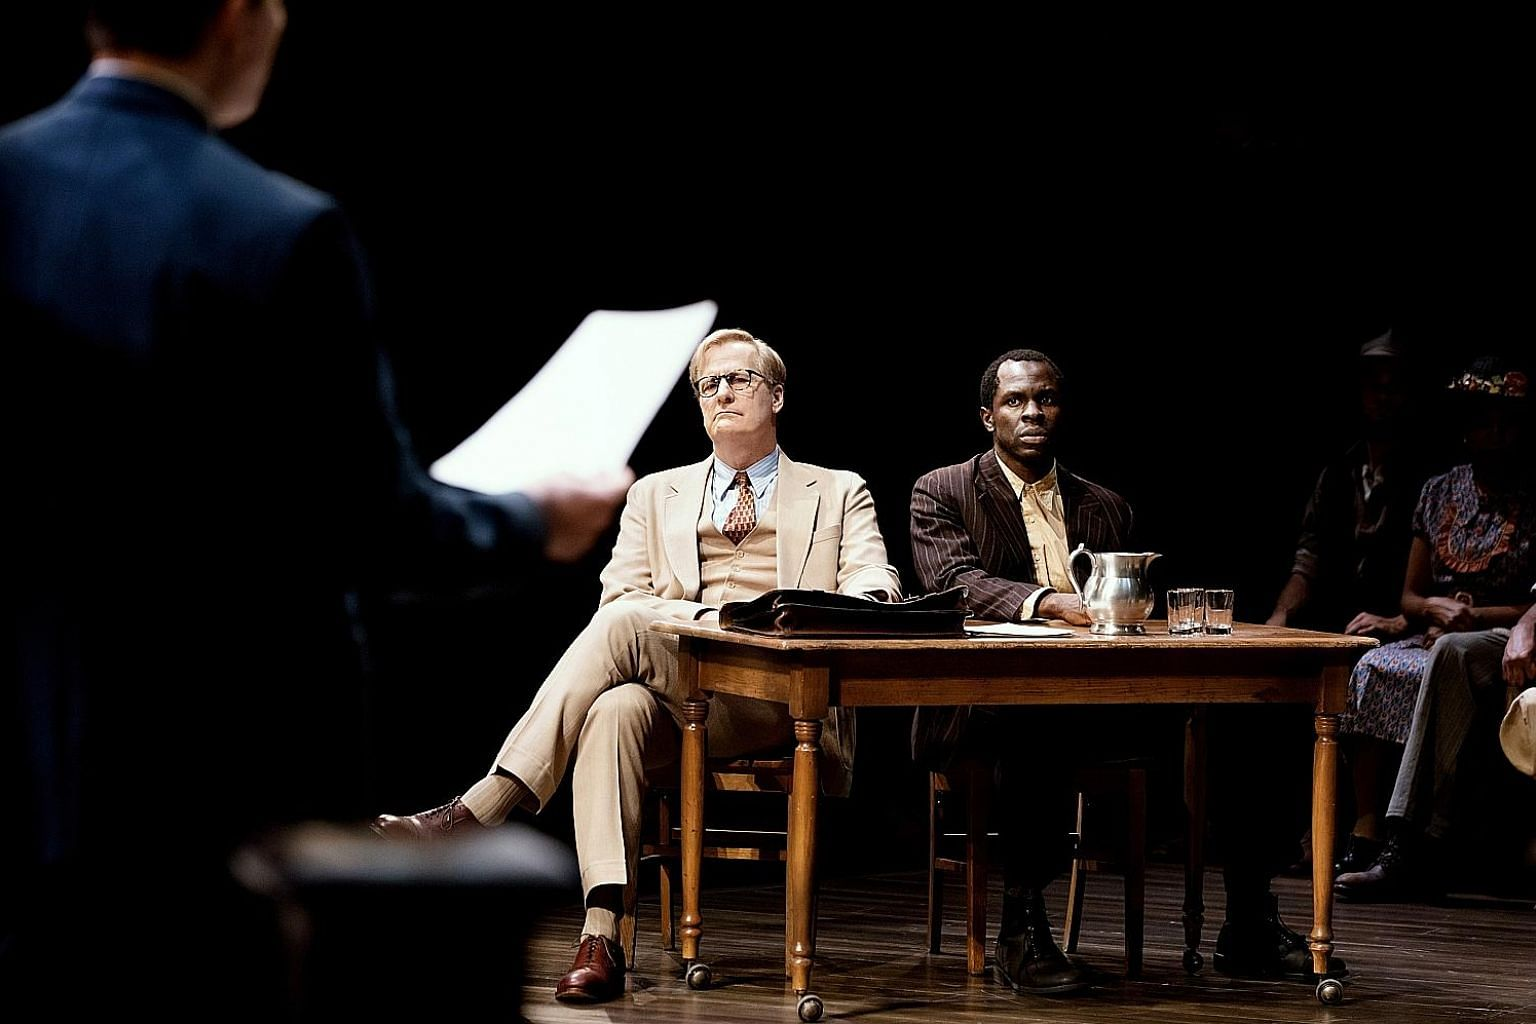 Jeff Daniels (right) plays lawyer Atticus Finch, while Gbenga Akinnagbe (far right) plays Tom Robinson, a labourer wrongly accused of rape, in the Broadway production of To Kill A Mockingbird.